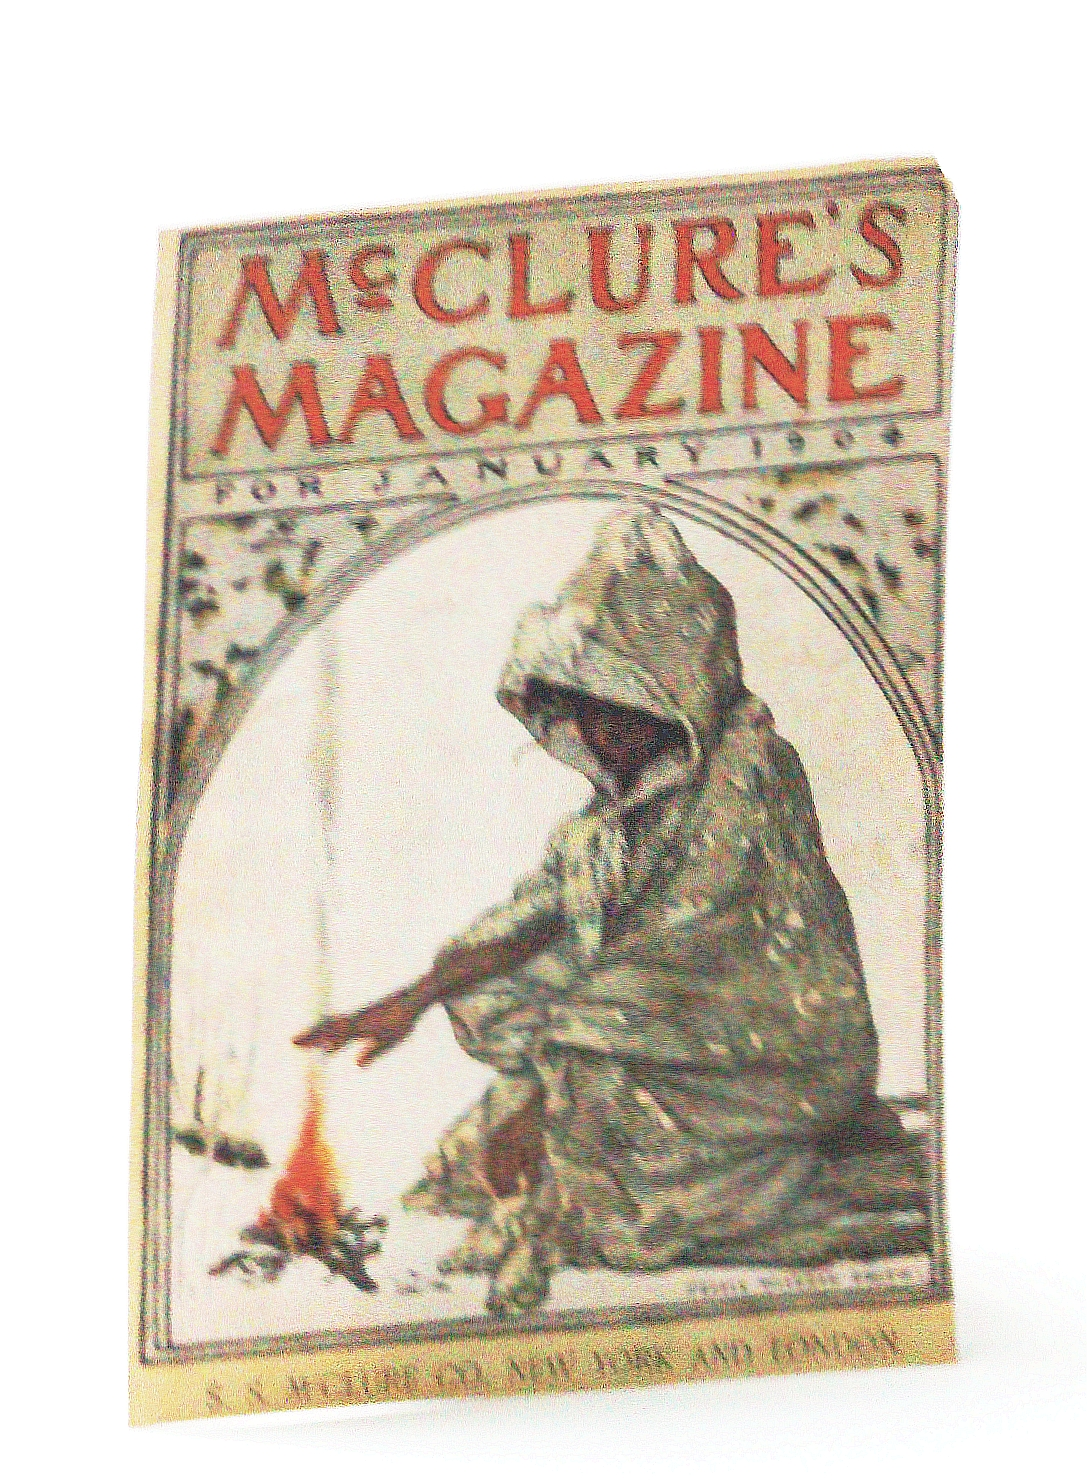 Image for McClure's Magazine, January (Jan.) 1904 - Cover Only